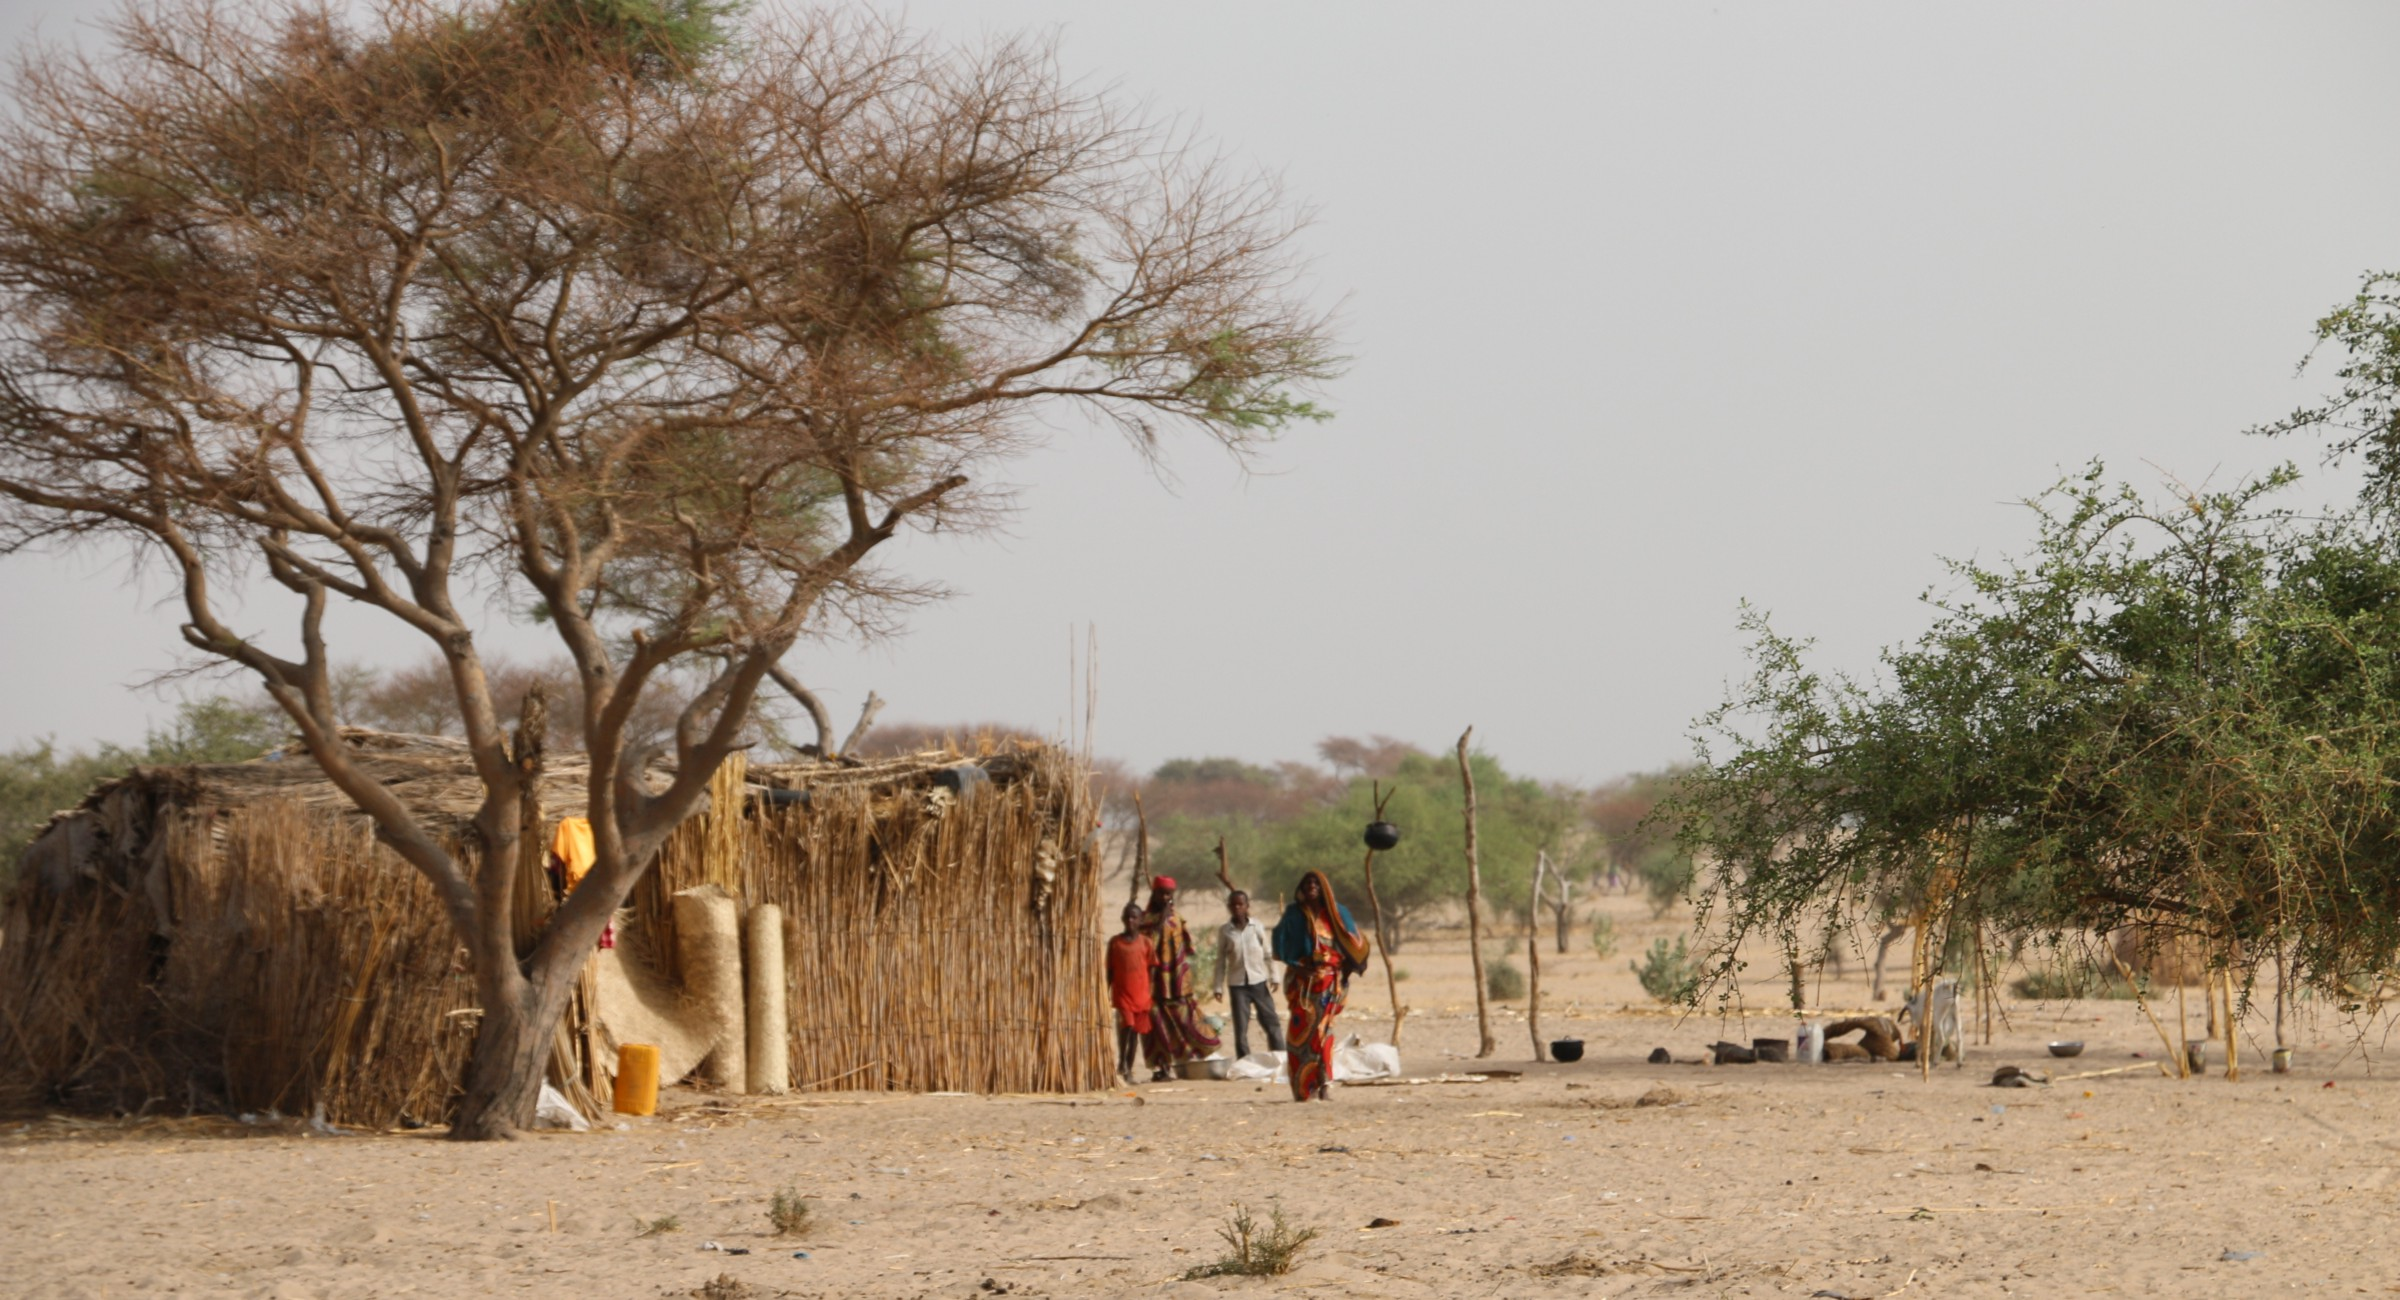 Thousands Of City Children Not Getting >> Emergency School Meals For Thousands Of Children Uprooted By Boko